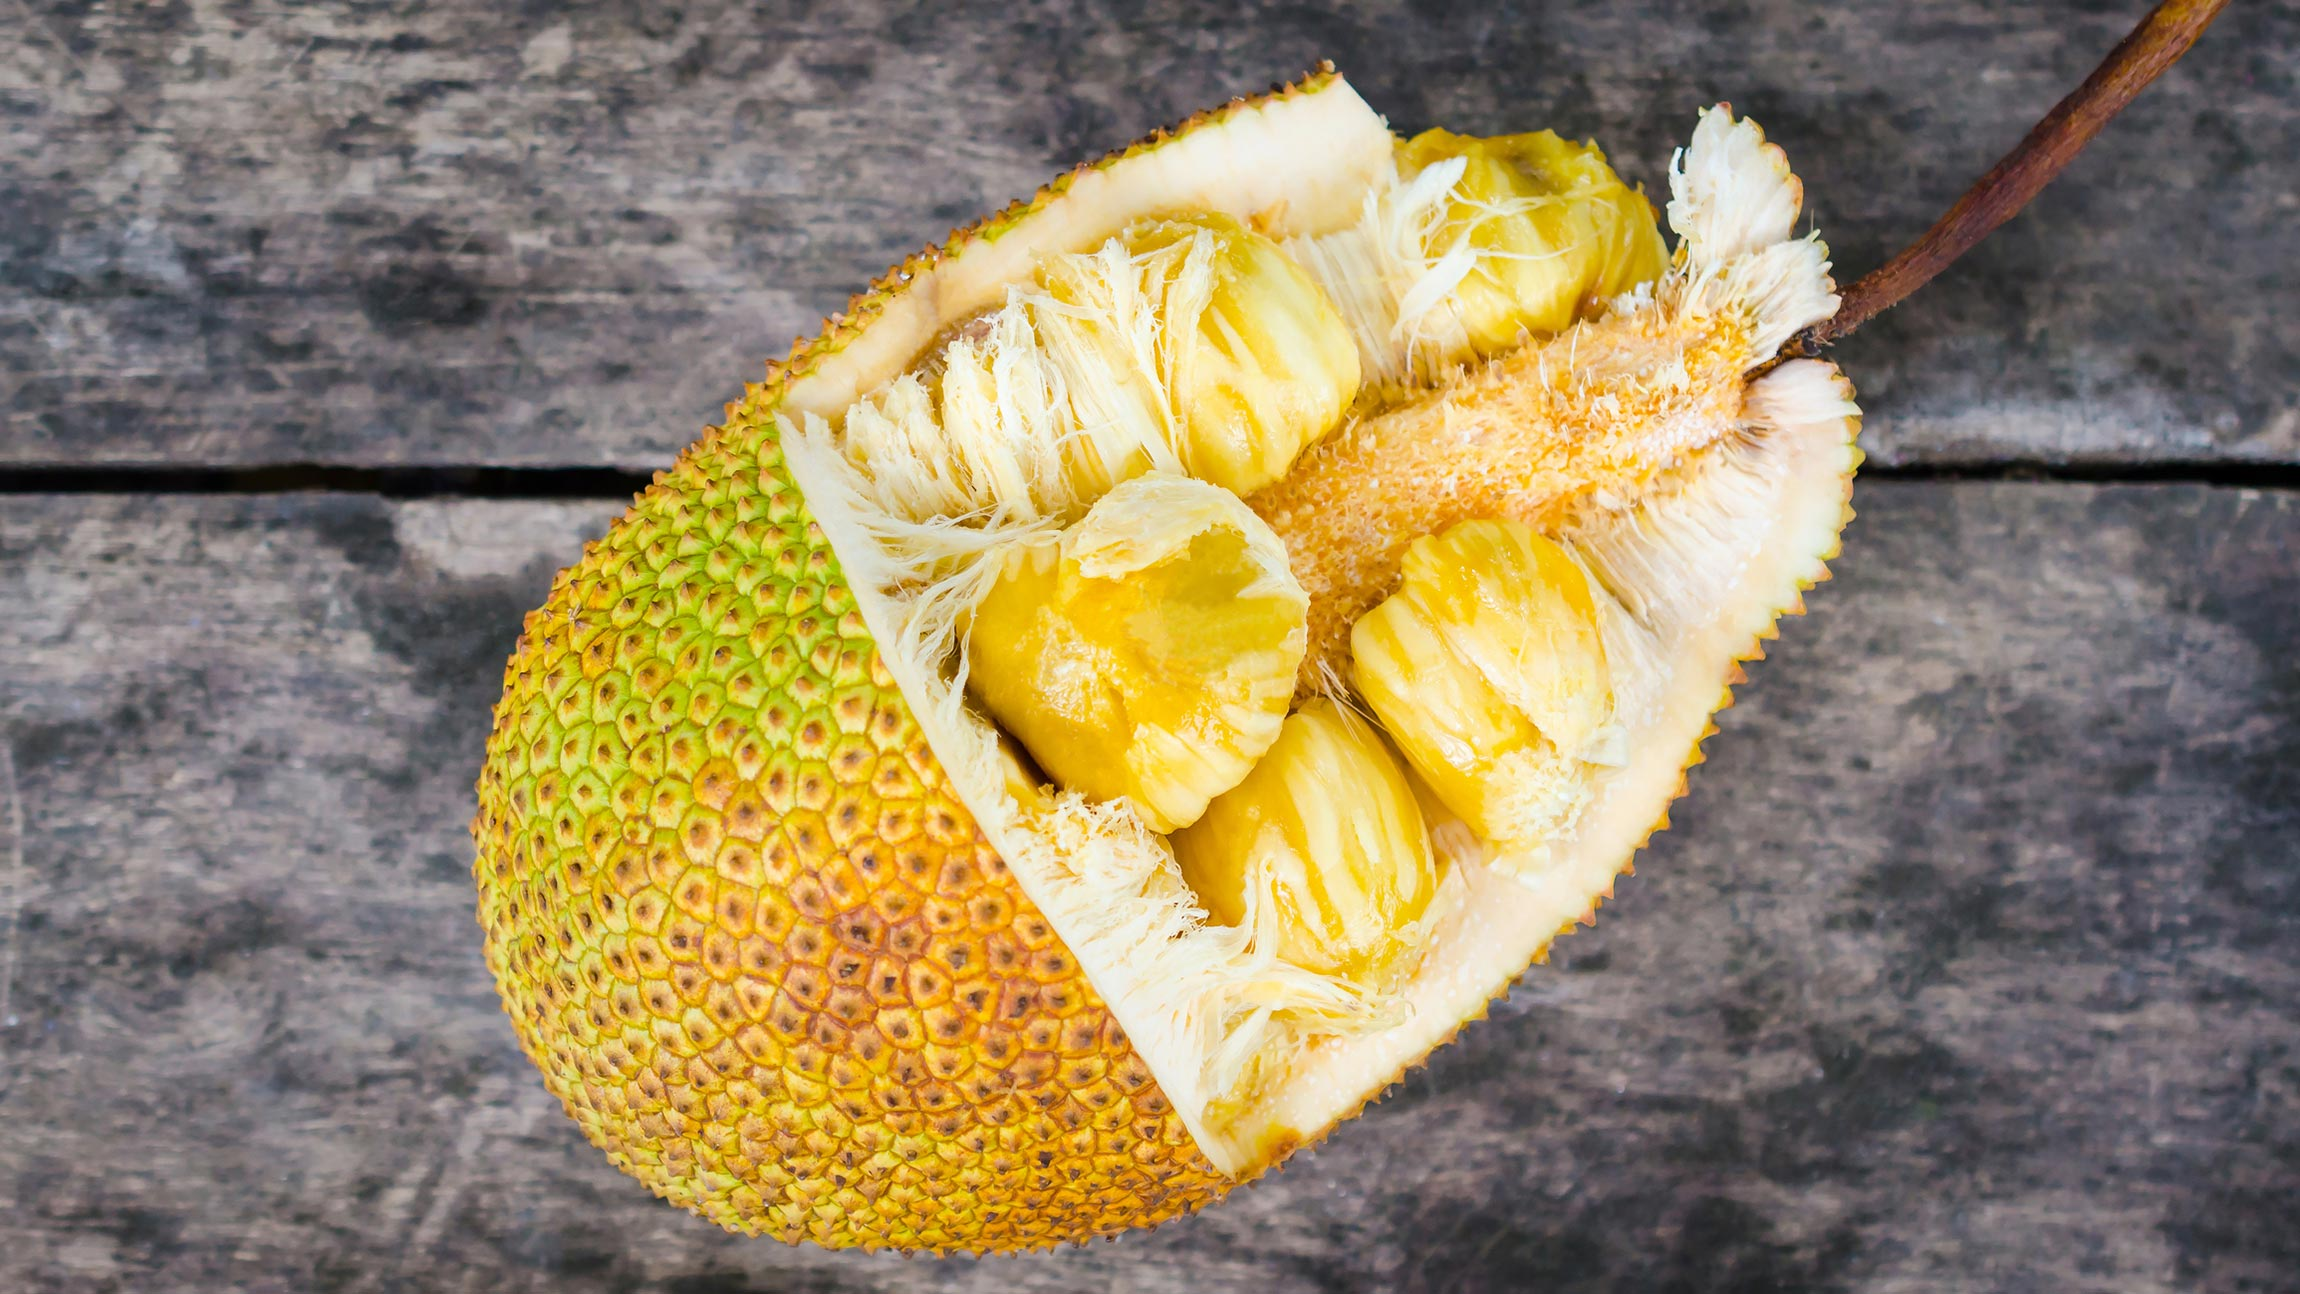 What a jackfruit looks like on the inside.